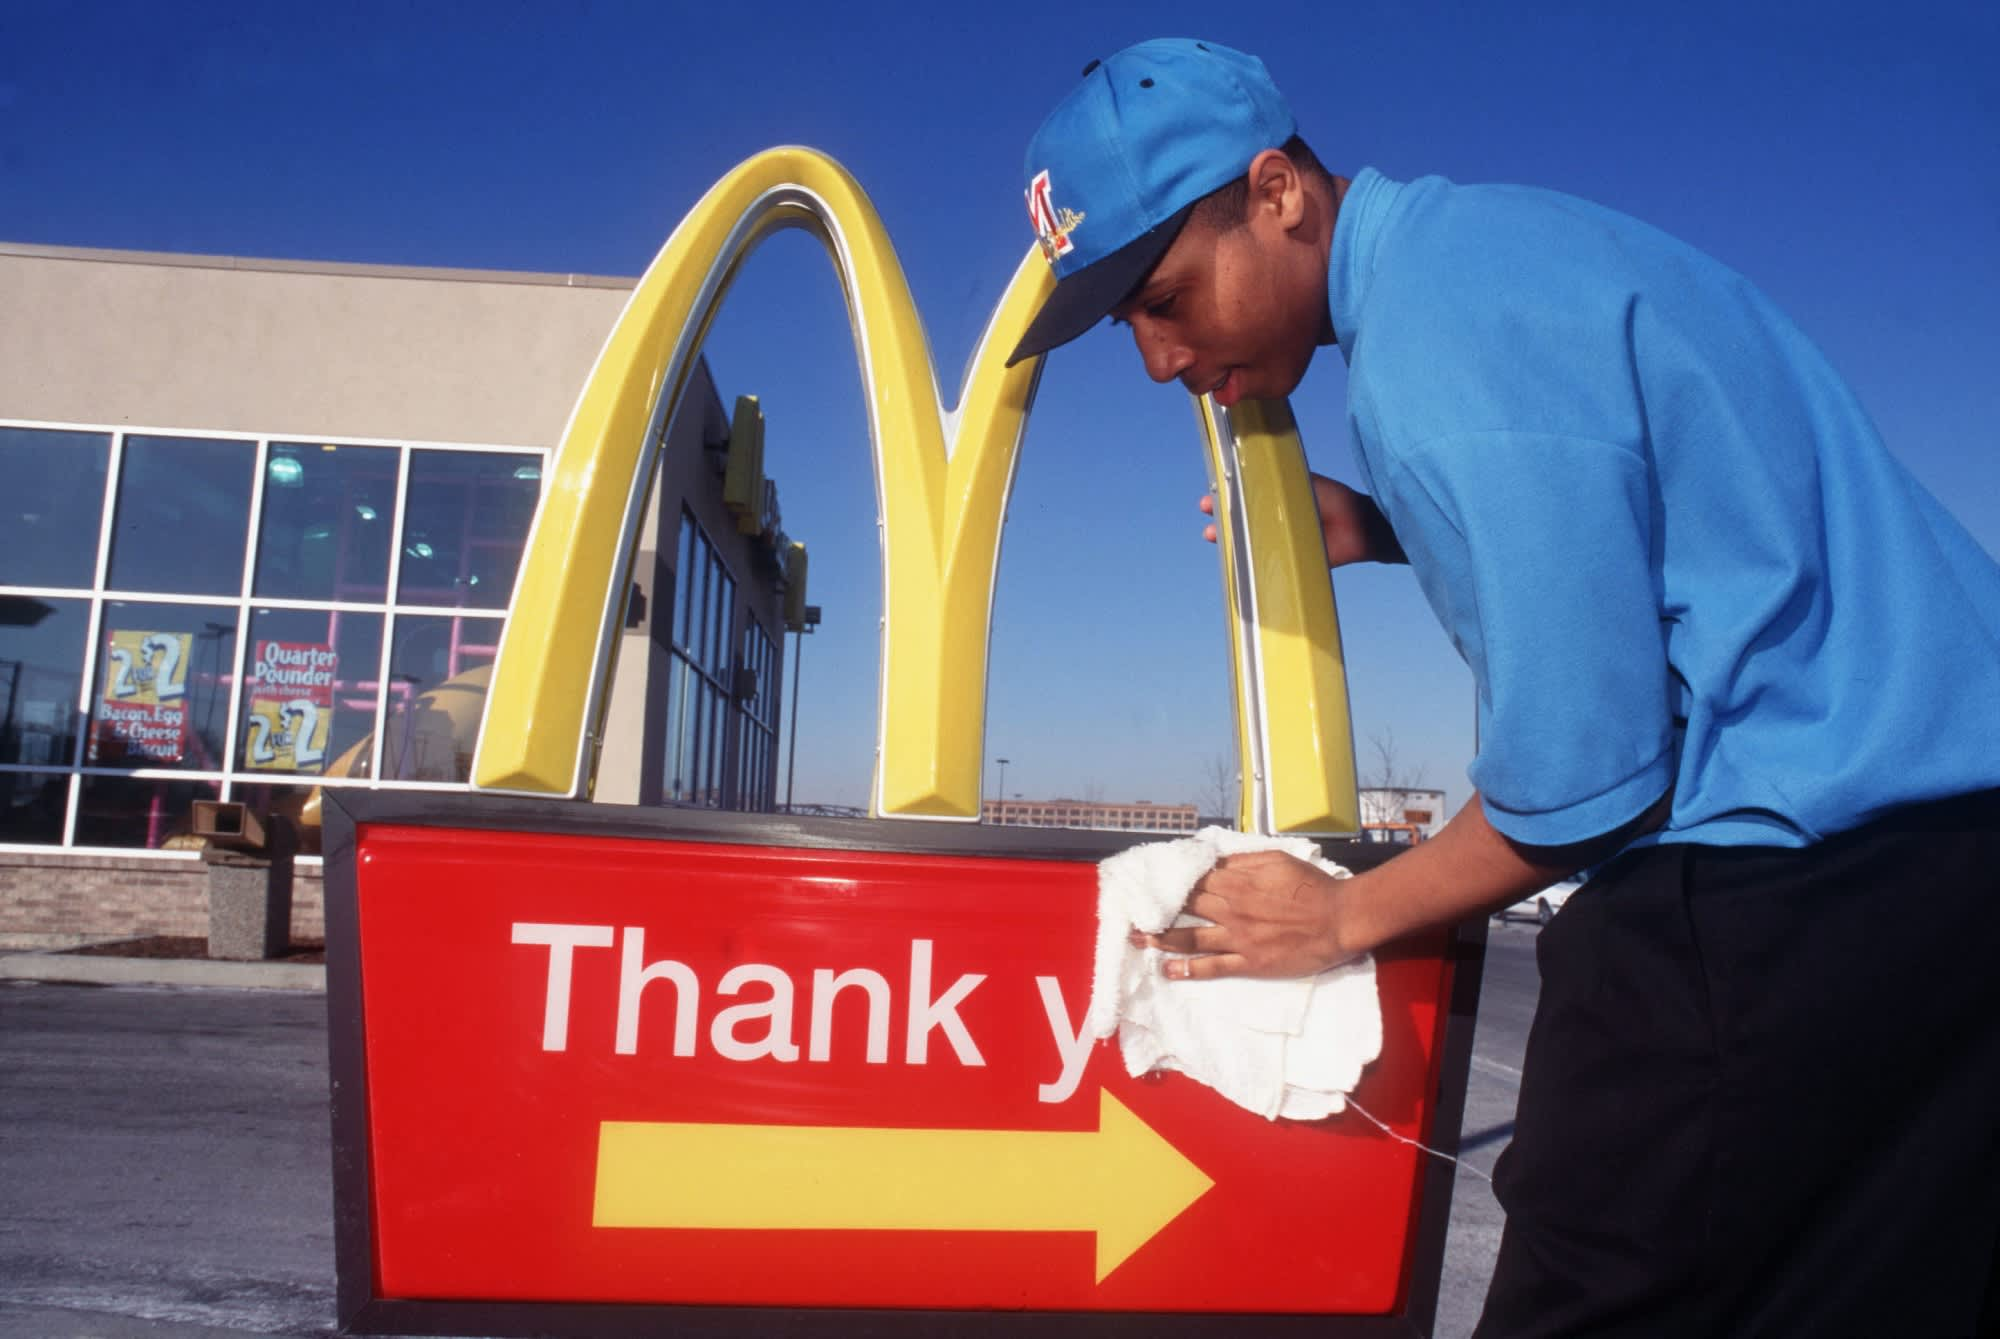 McDonald's partners with Mayo Clinic for aid in coronavirus safety